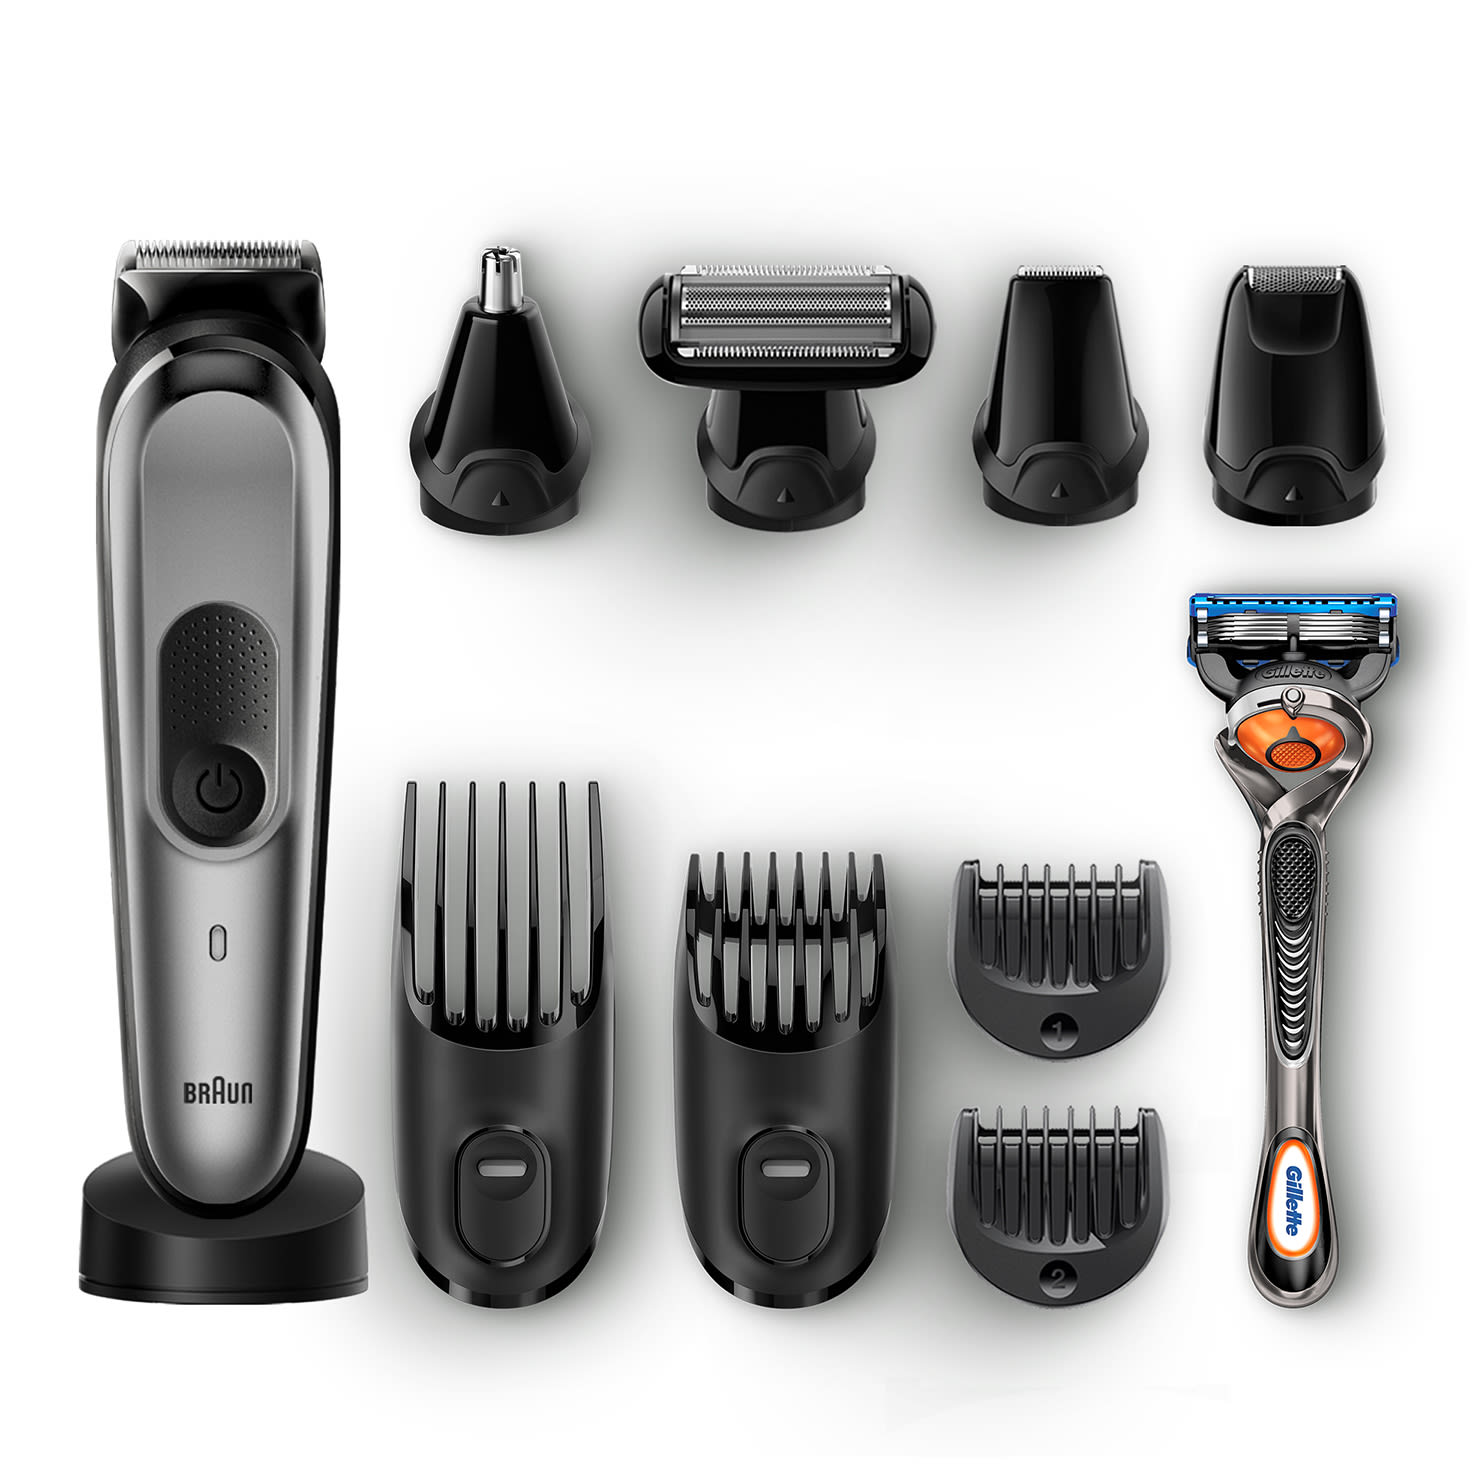 1-Braun-all-in-one-trimmer-mgk7021